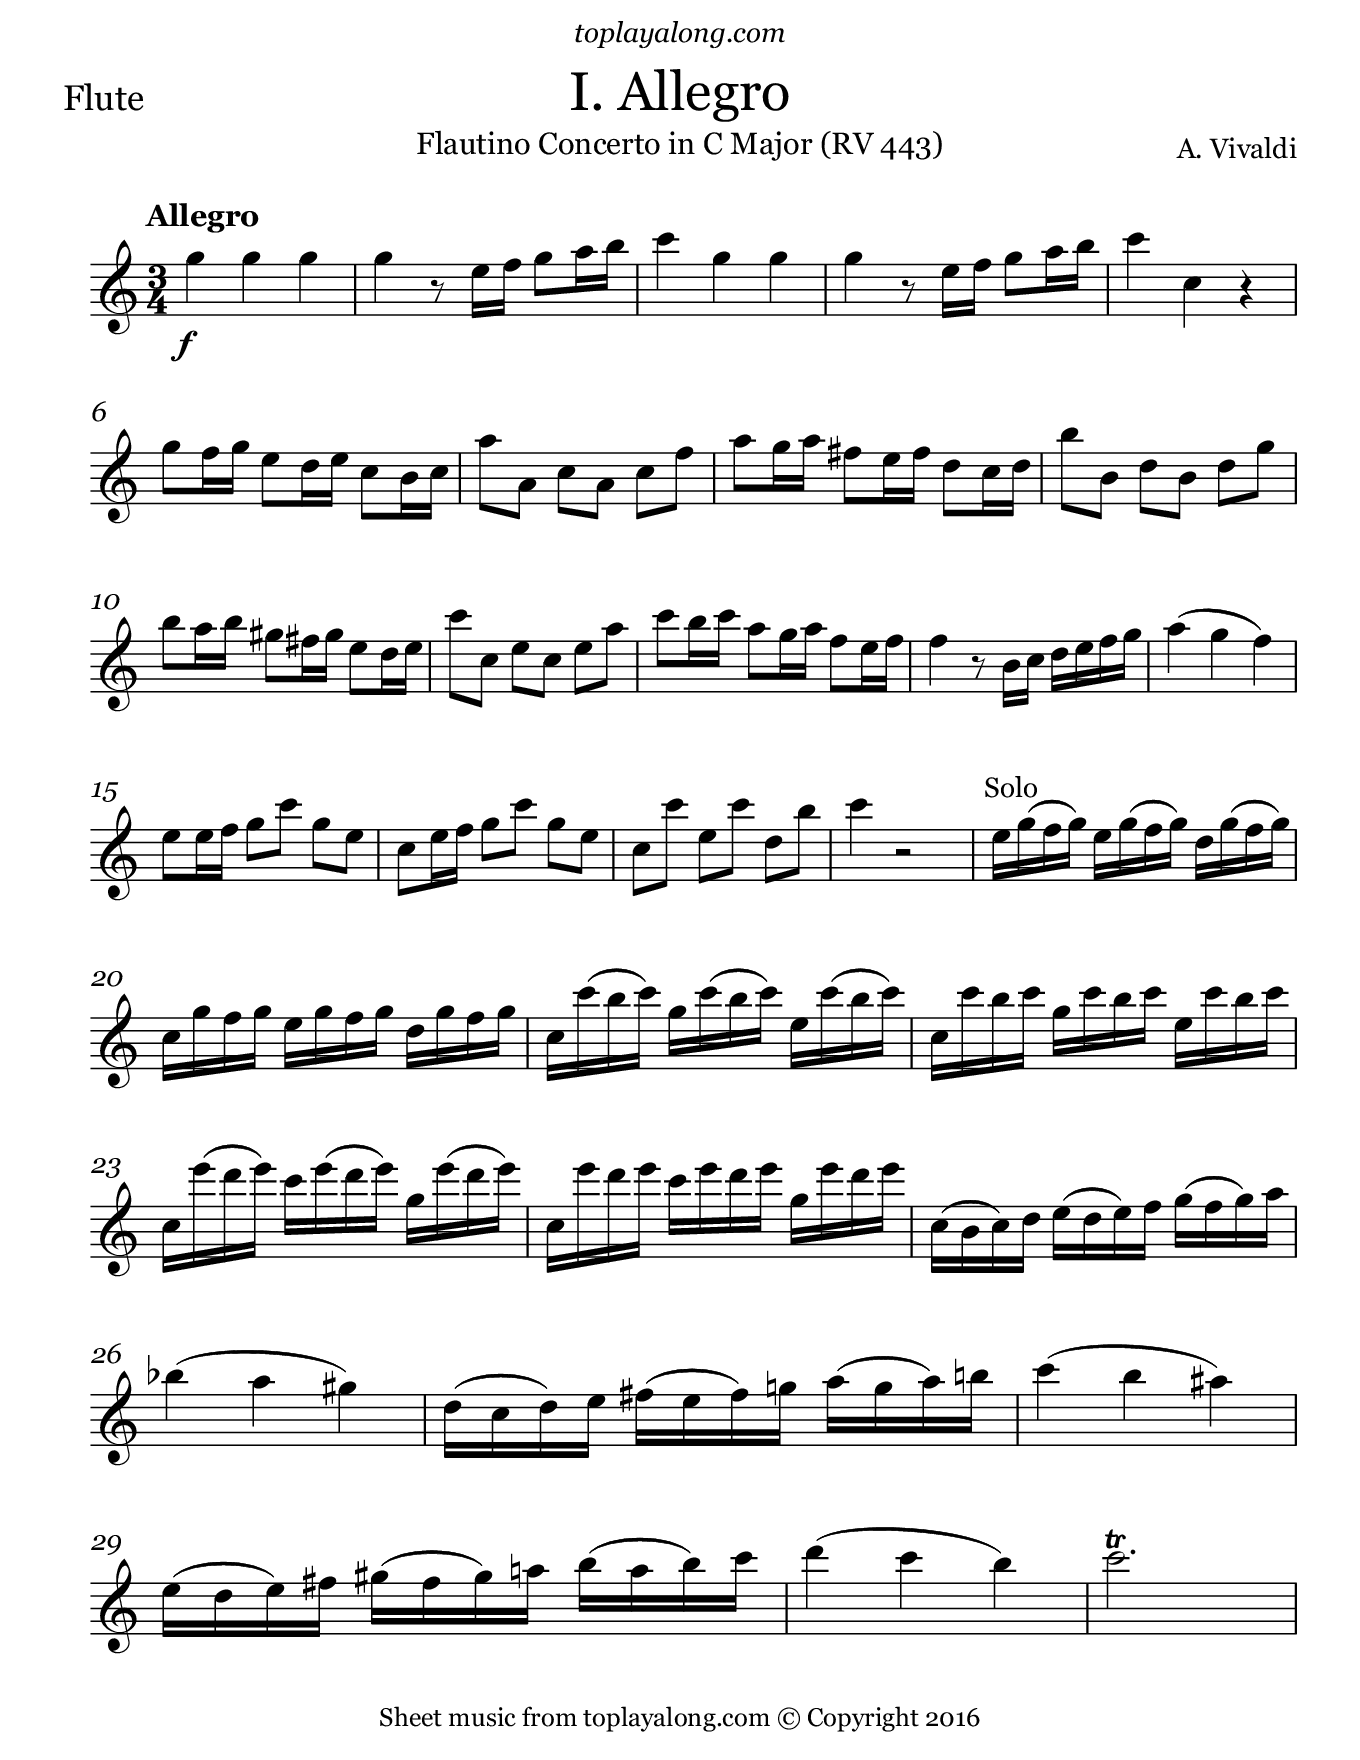 Flautino Concerto in C major RV 443 (I. Allegro) by Vivaldi. Sheet music for Flute, page 1.